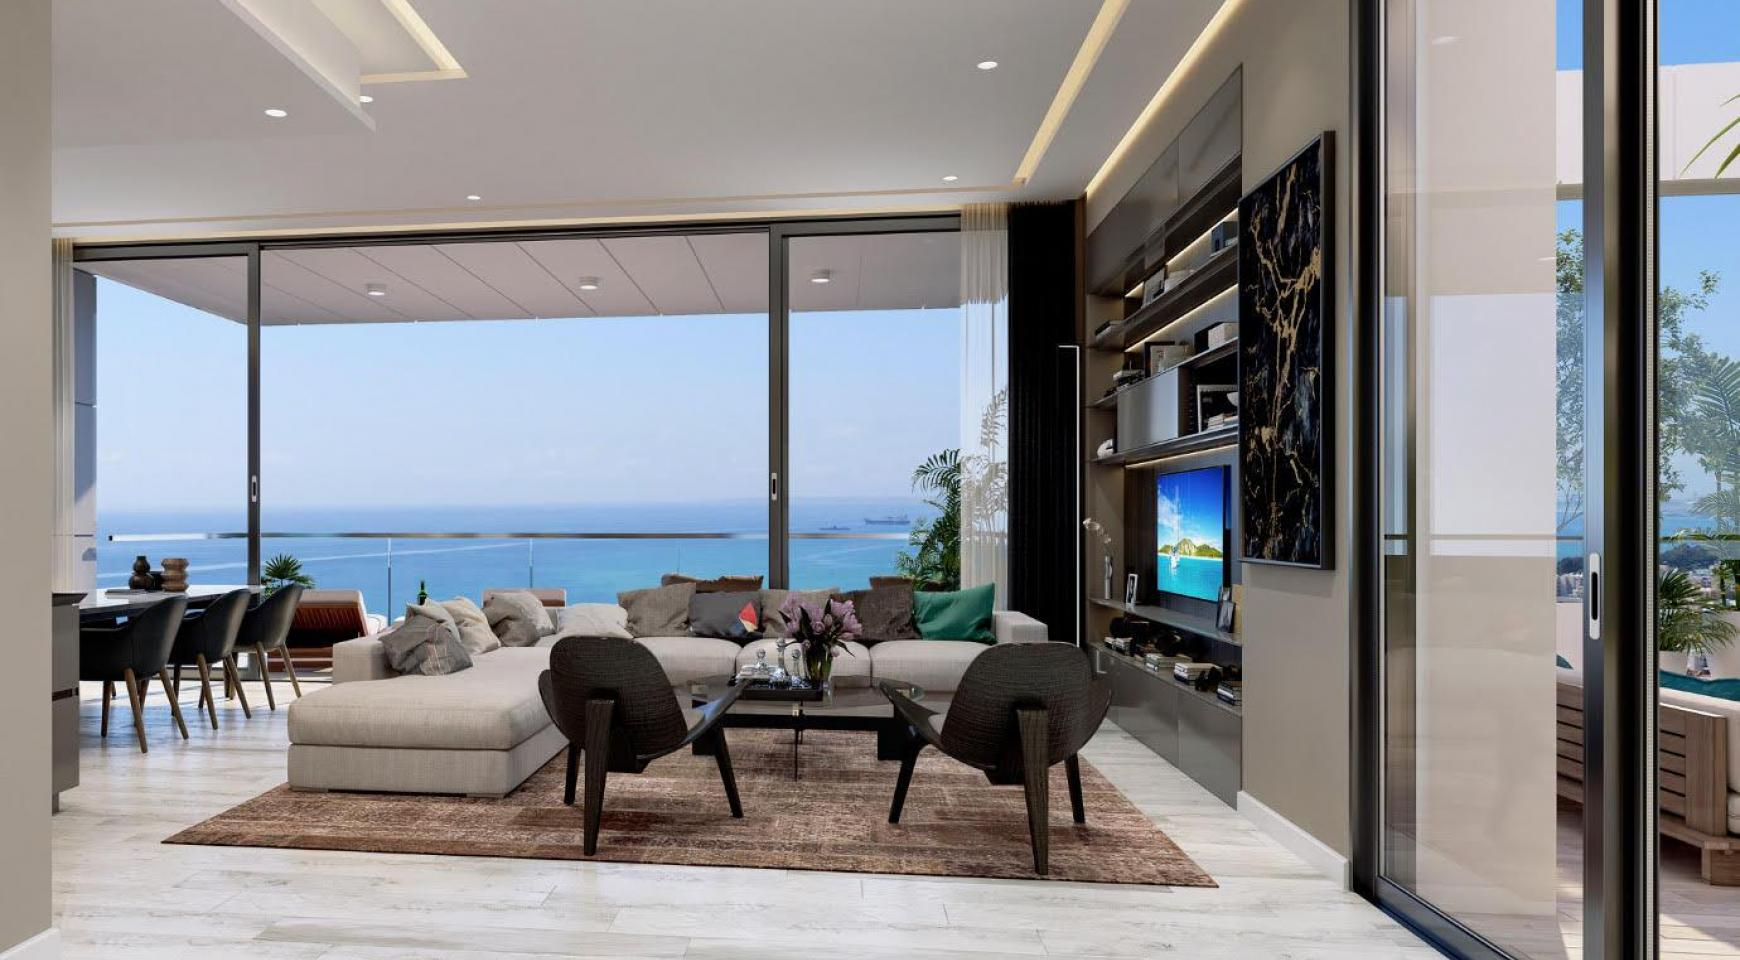 Spacious One Bedroom Apartment with Sea Views in a Luxury Complex - 4